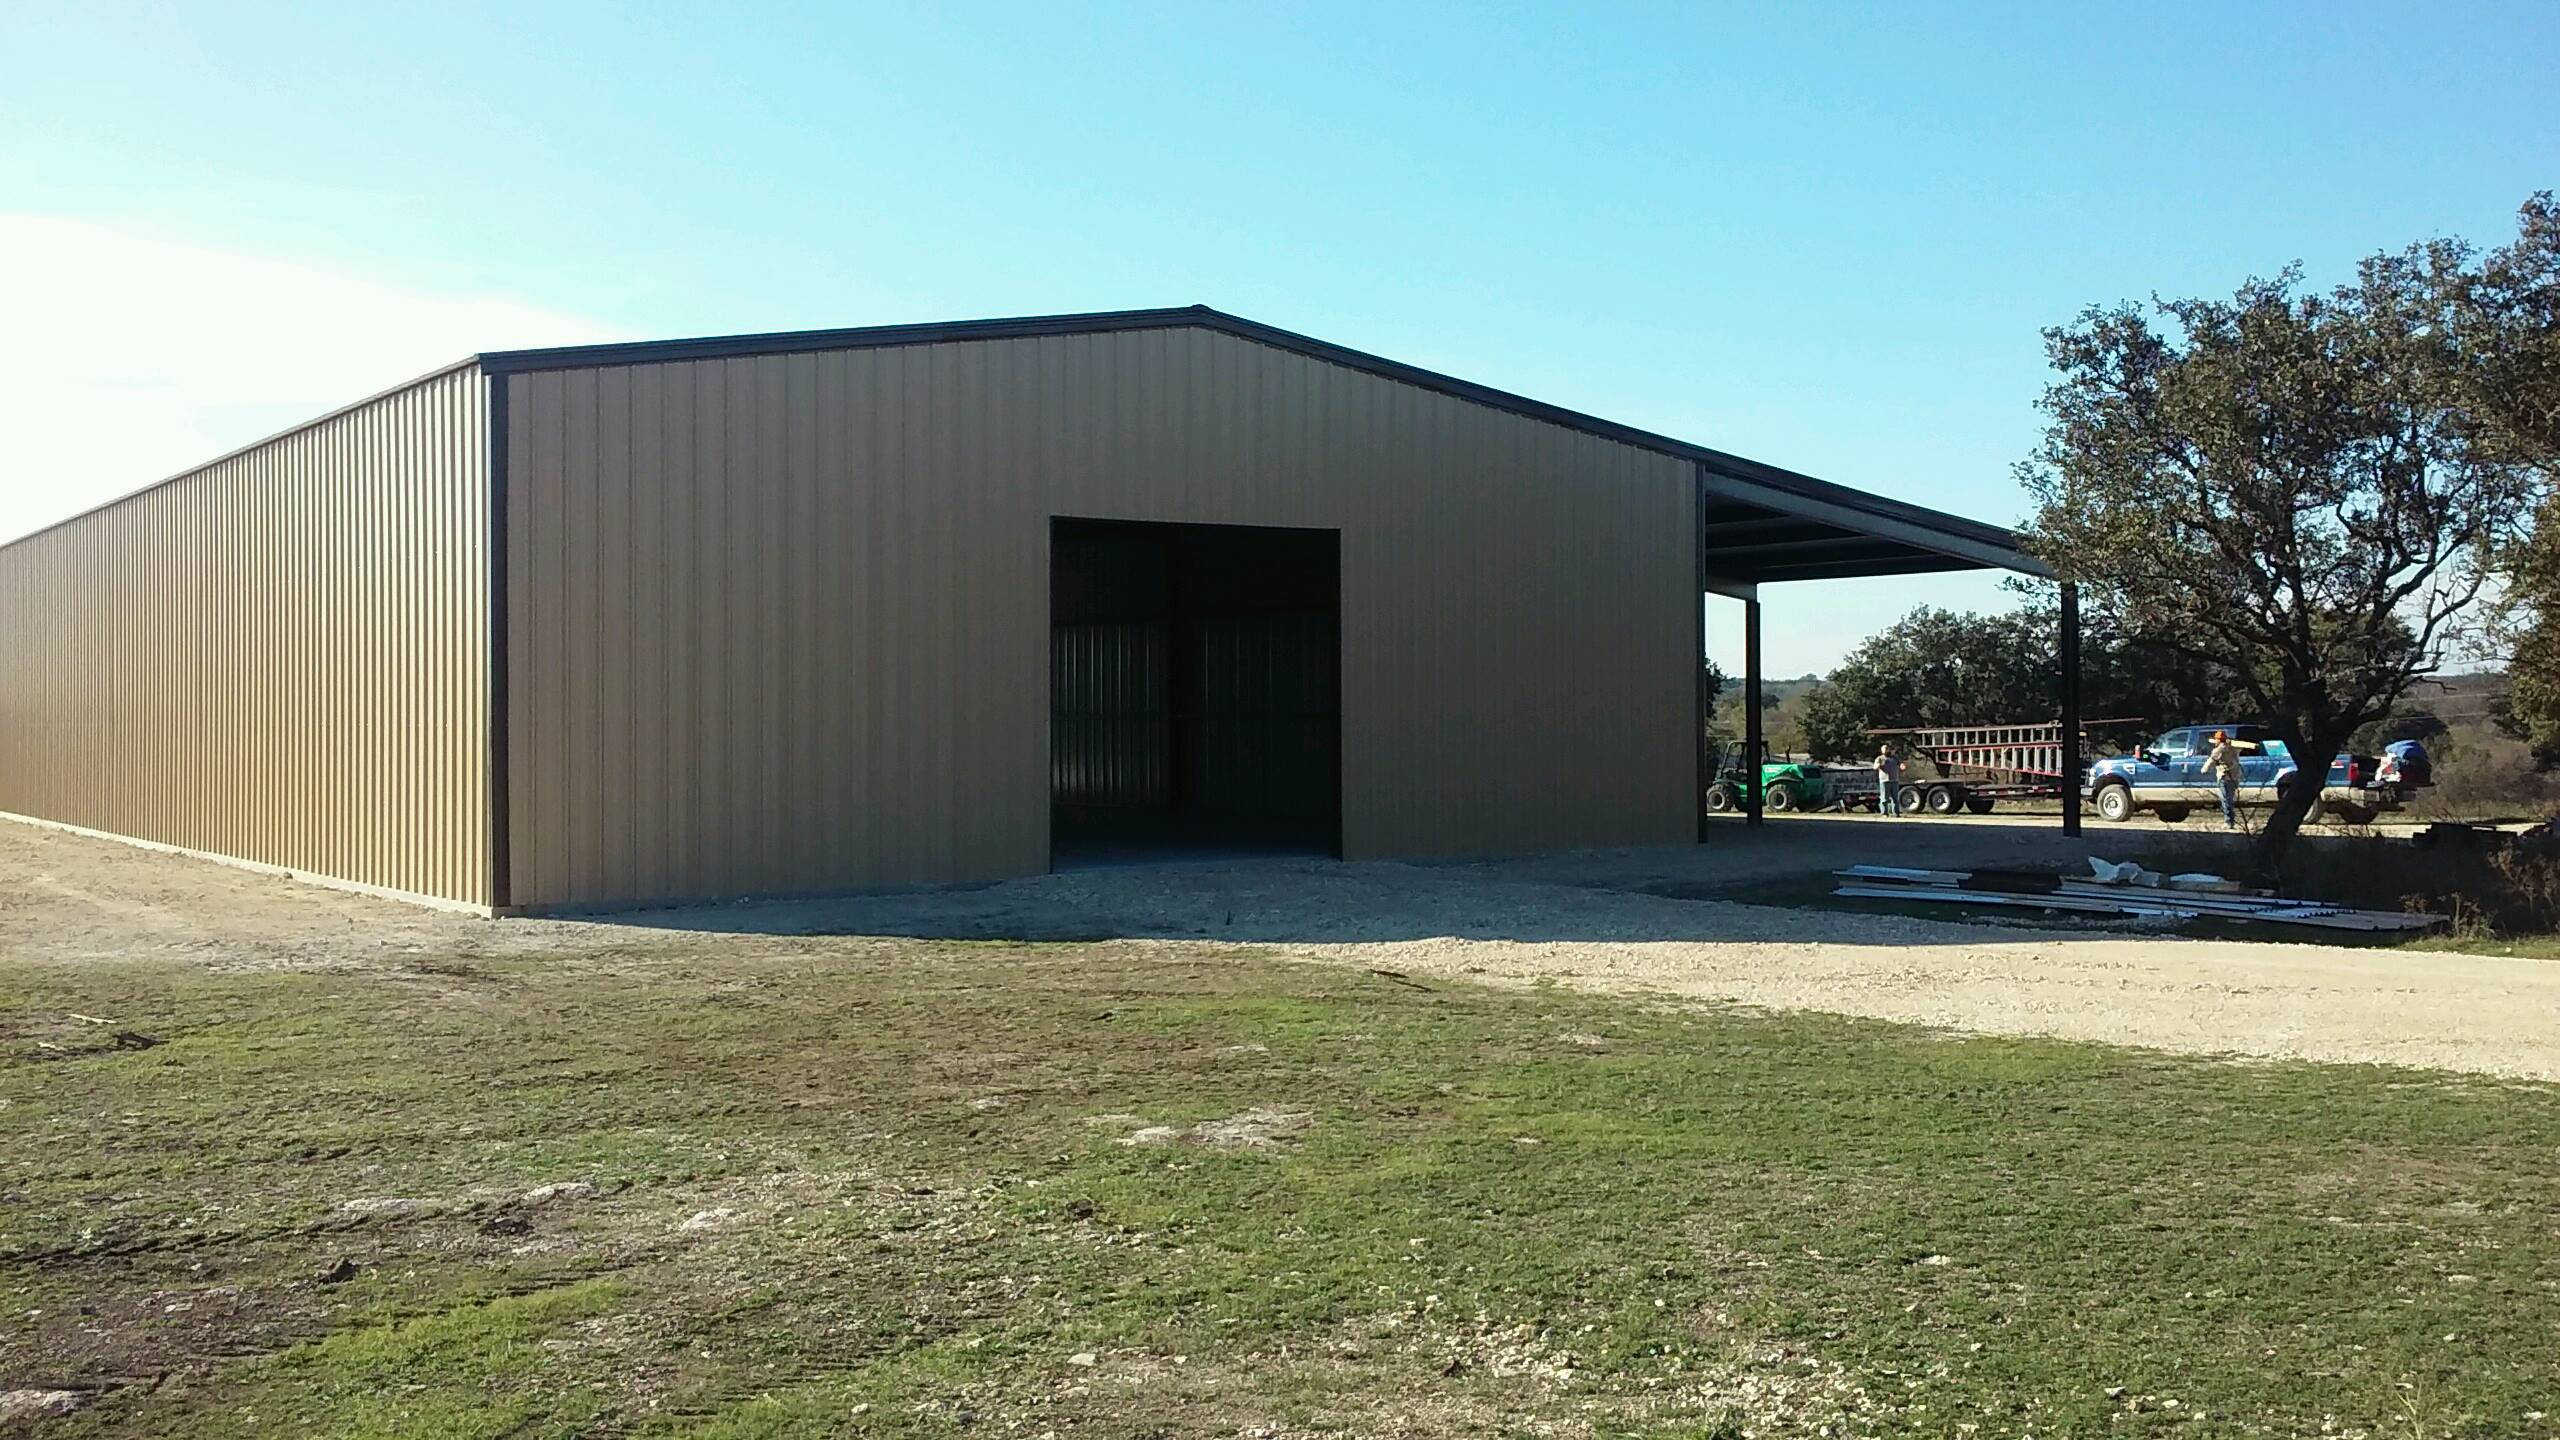 Check Out Our Recently Buit Metal Buildings And Decide